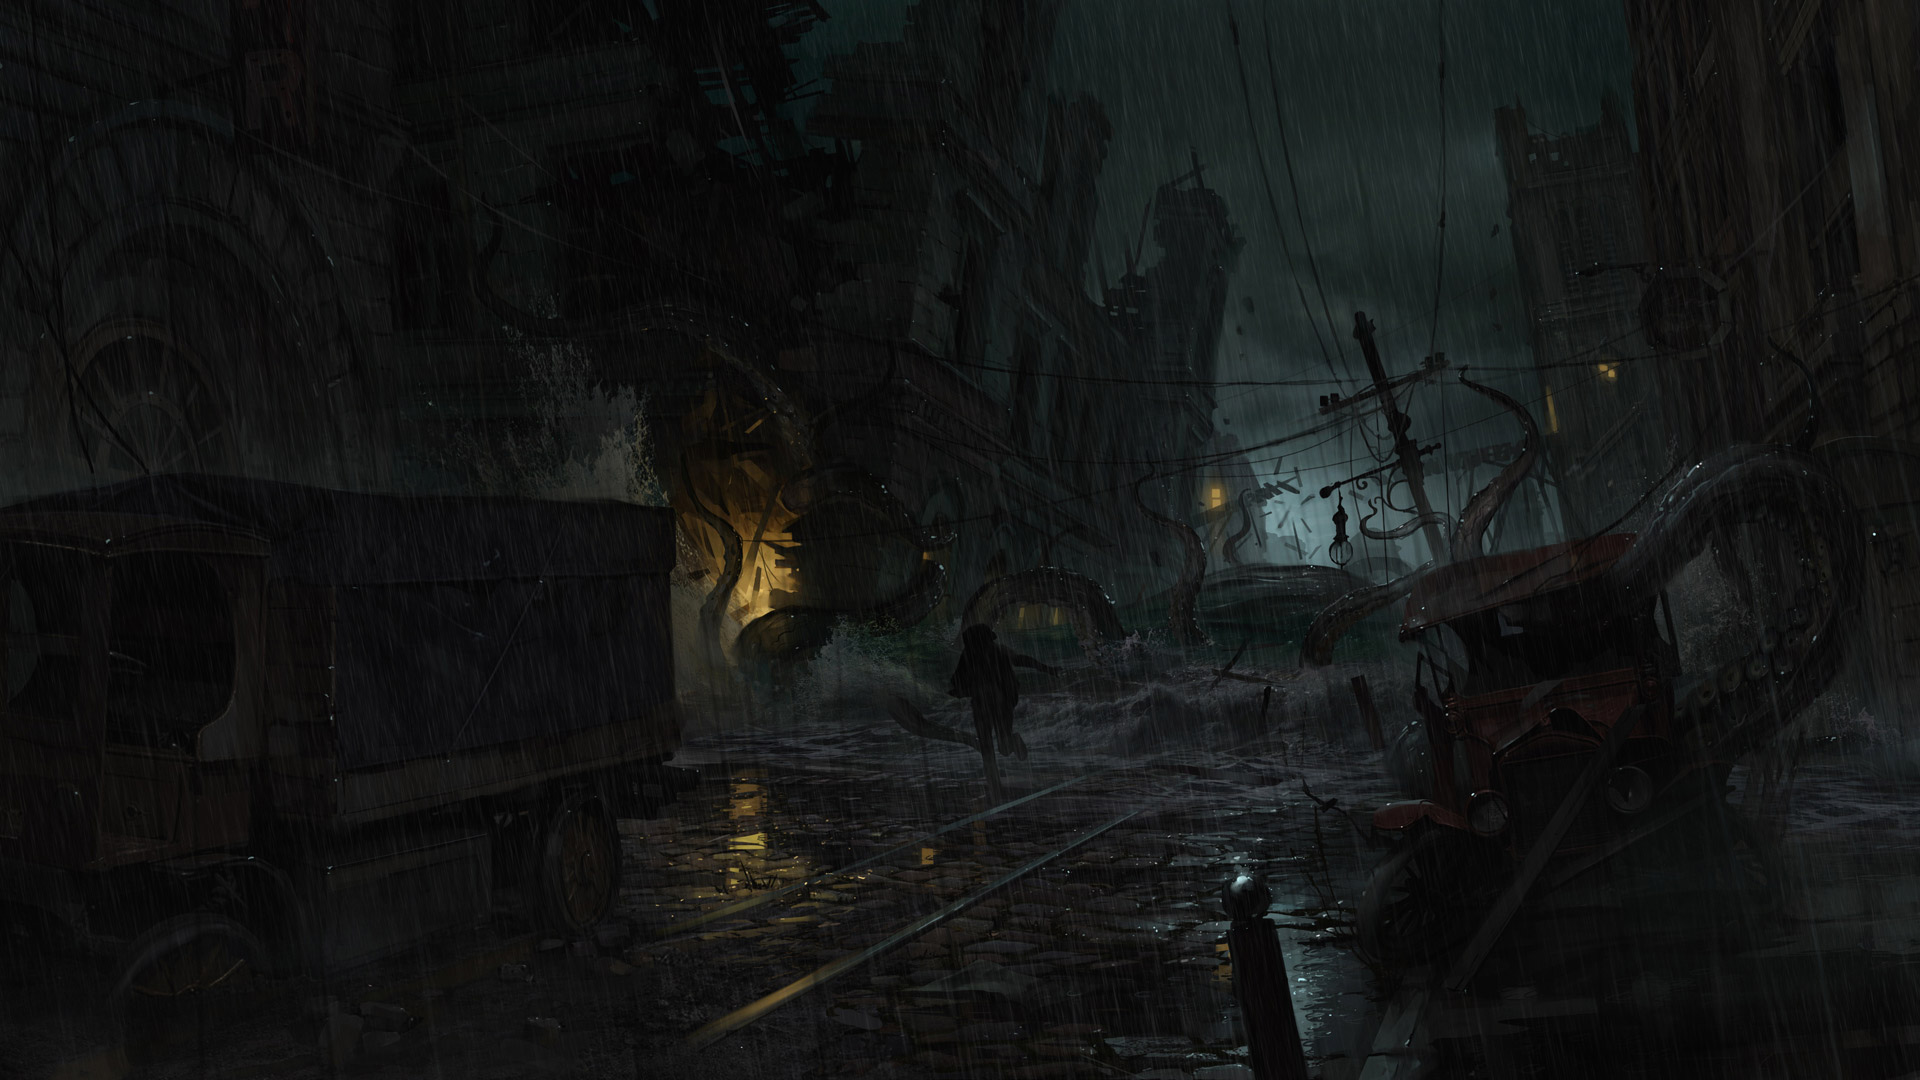 Free The Sinking City Wallpaper in 1920x1080